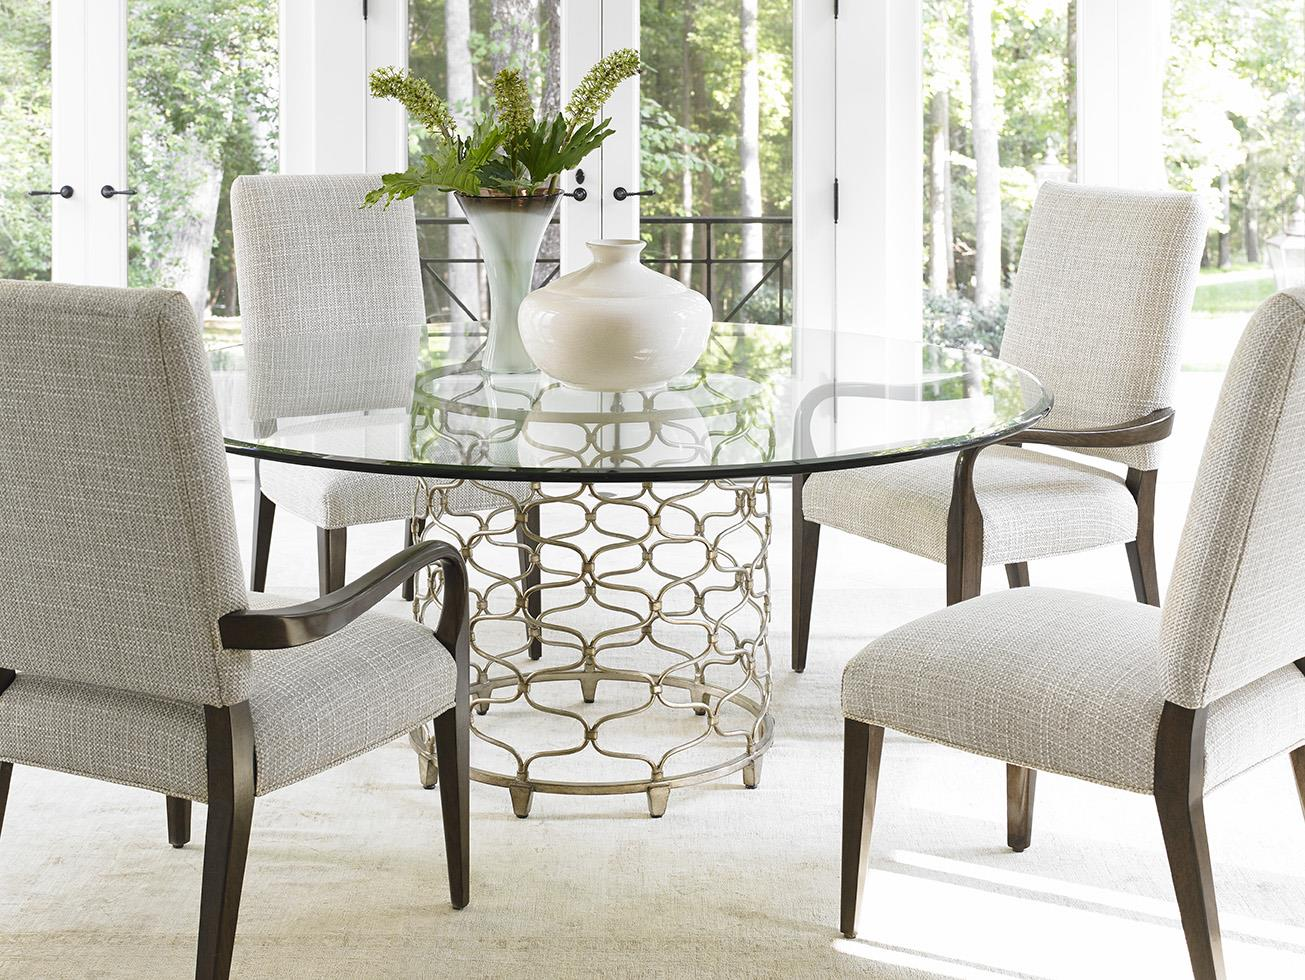 LAUREL CANYON 5 Pc Dining Set by Lexington at Baer's Furniture